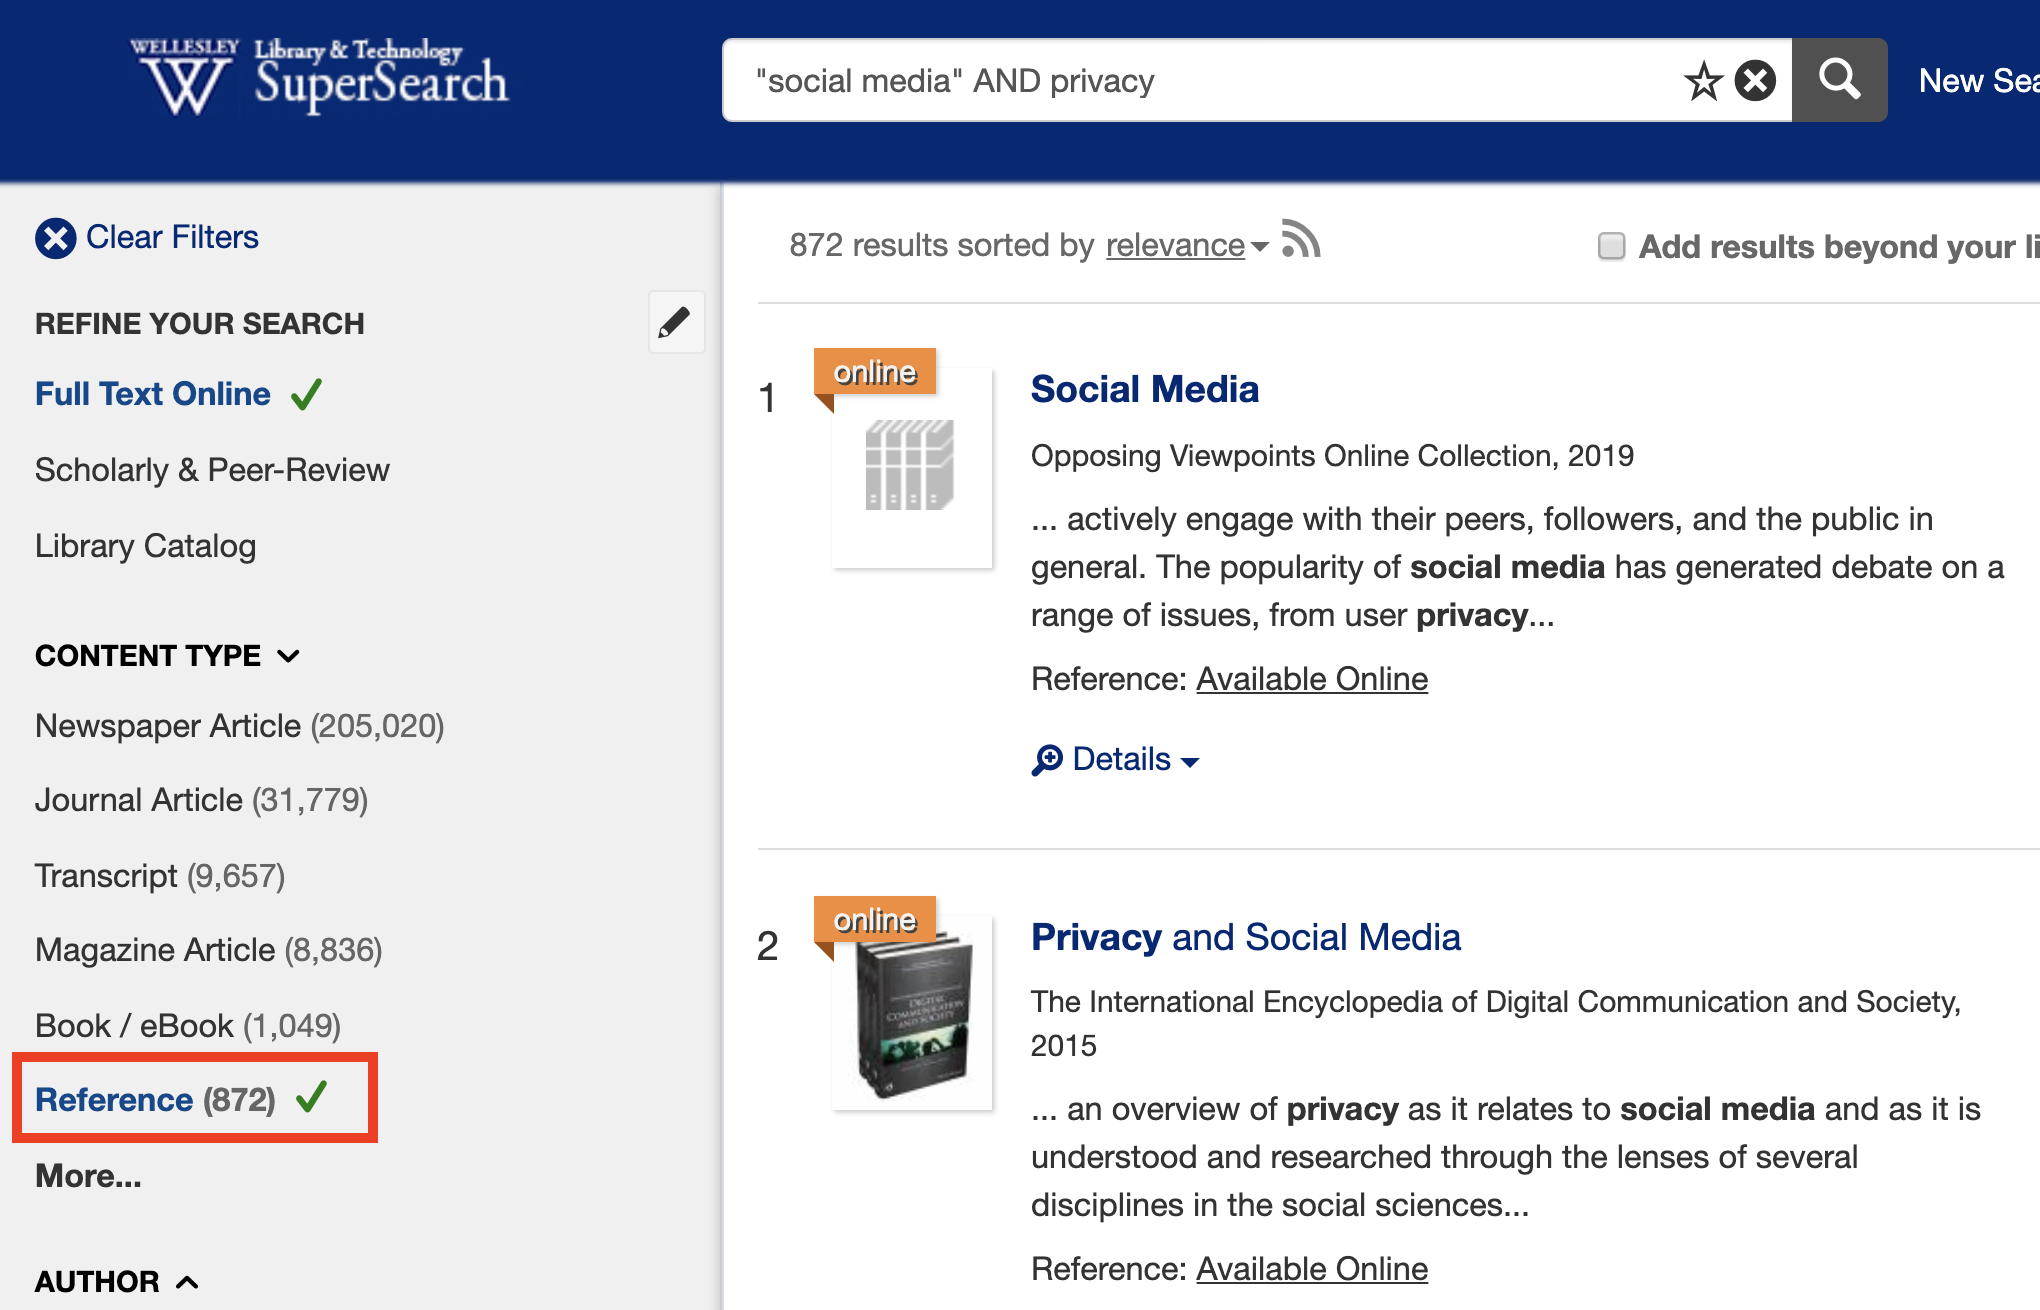 screenshot of search for social media and privacy limited to reference